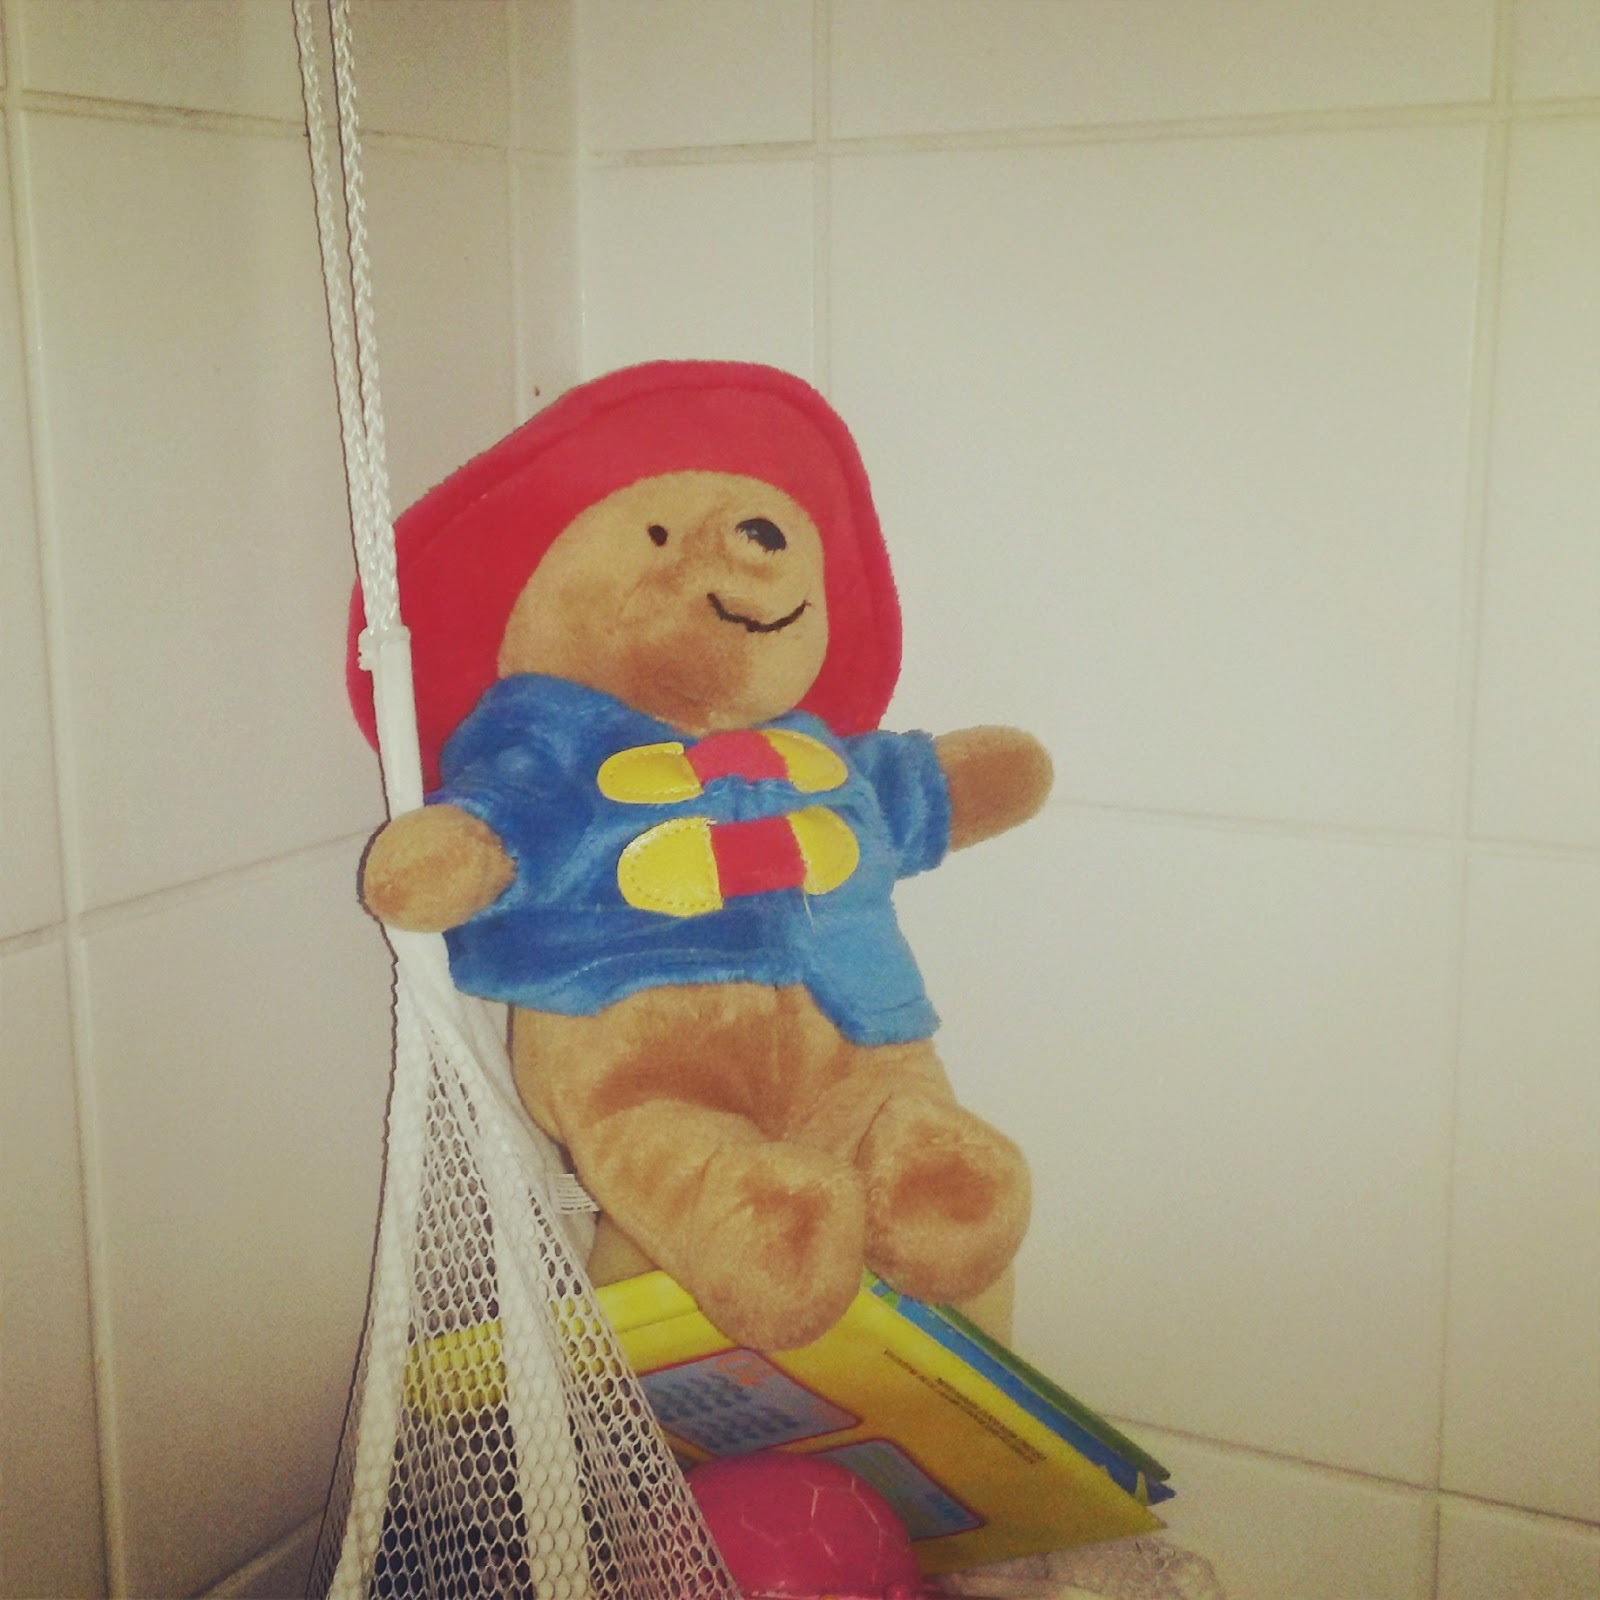 Paddington in the shower